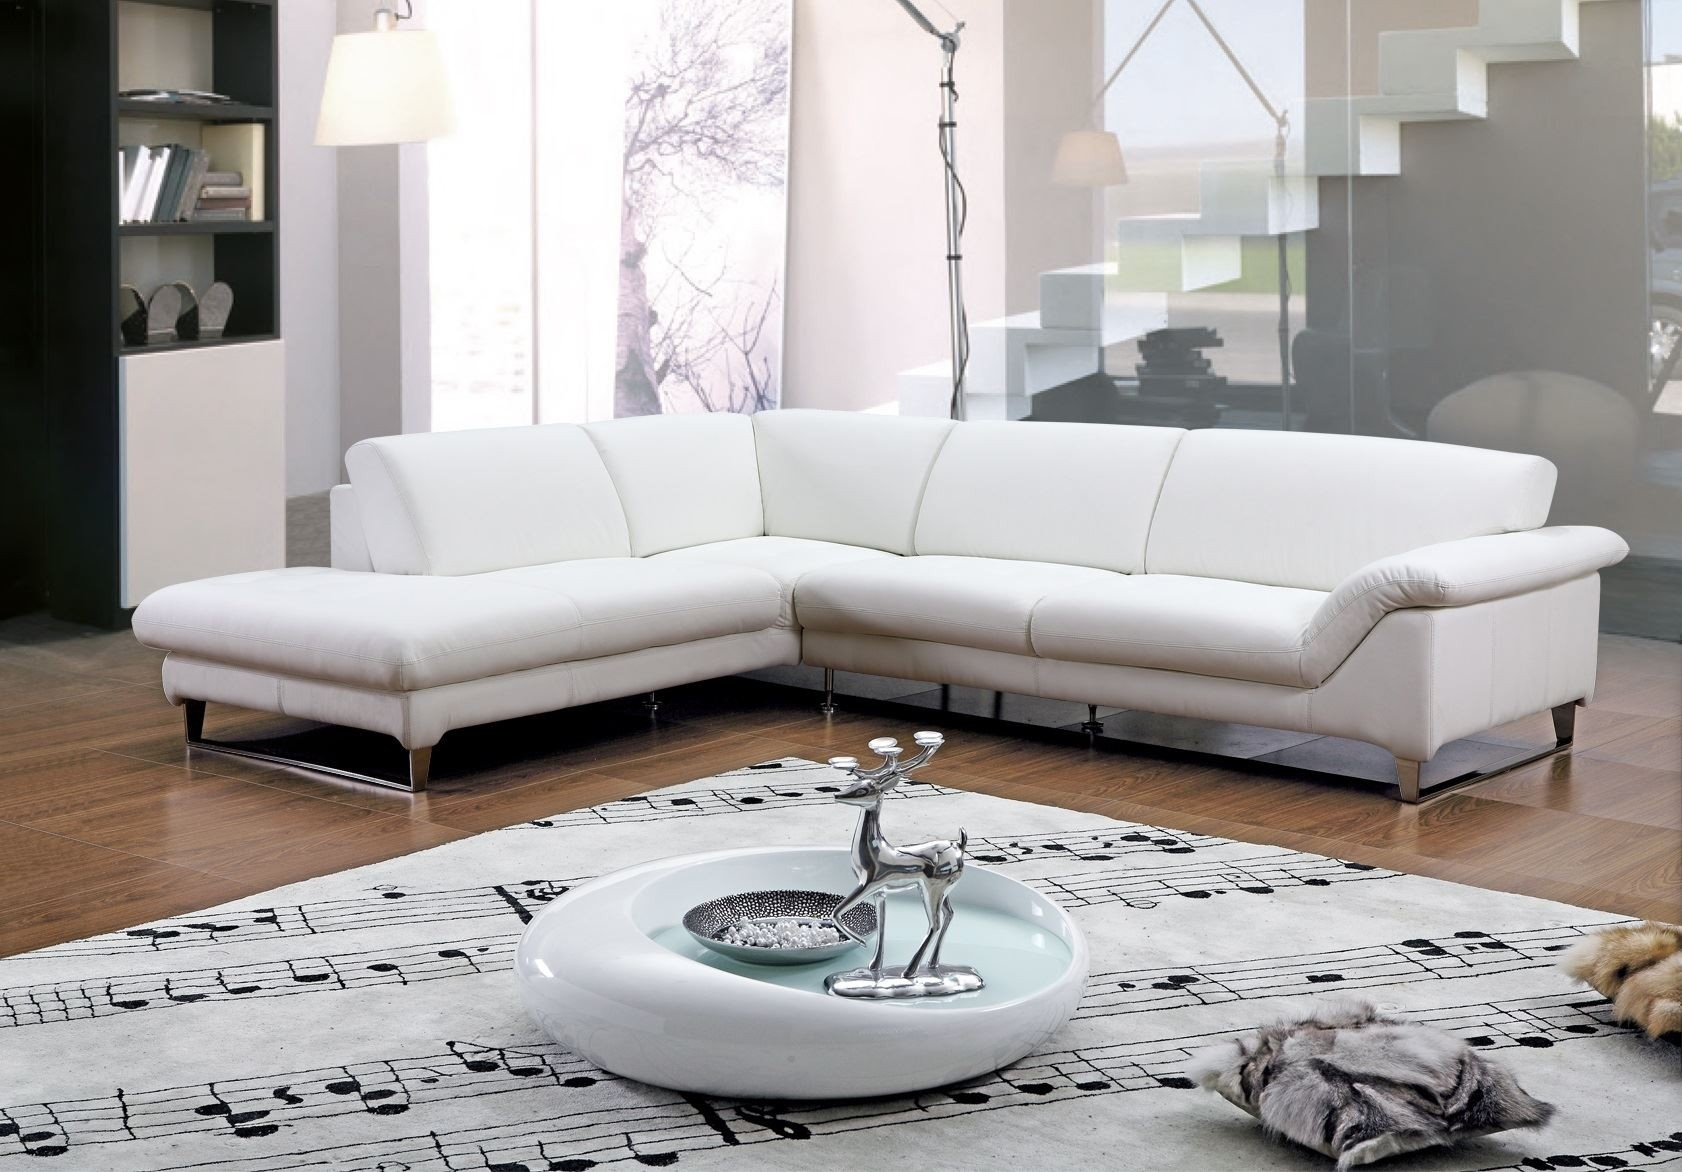 White Leather Sectional Sofa With Chaise Has One Of The Best Kind Of Other Is Modern Contemporary White Leather Chaise Sofa Sets With